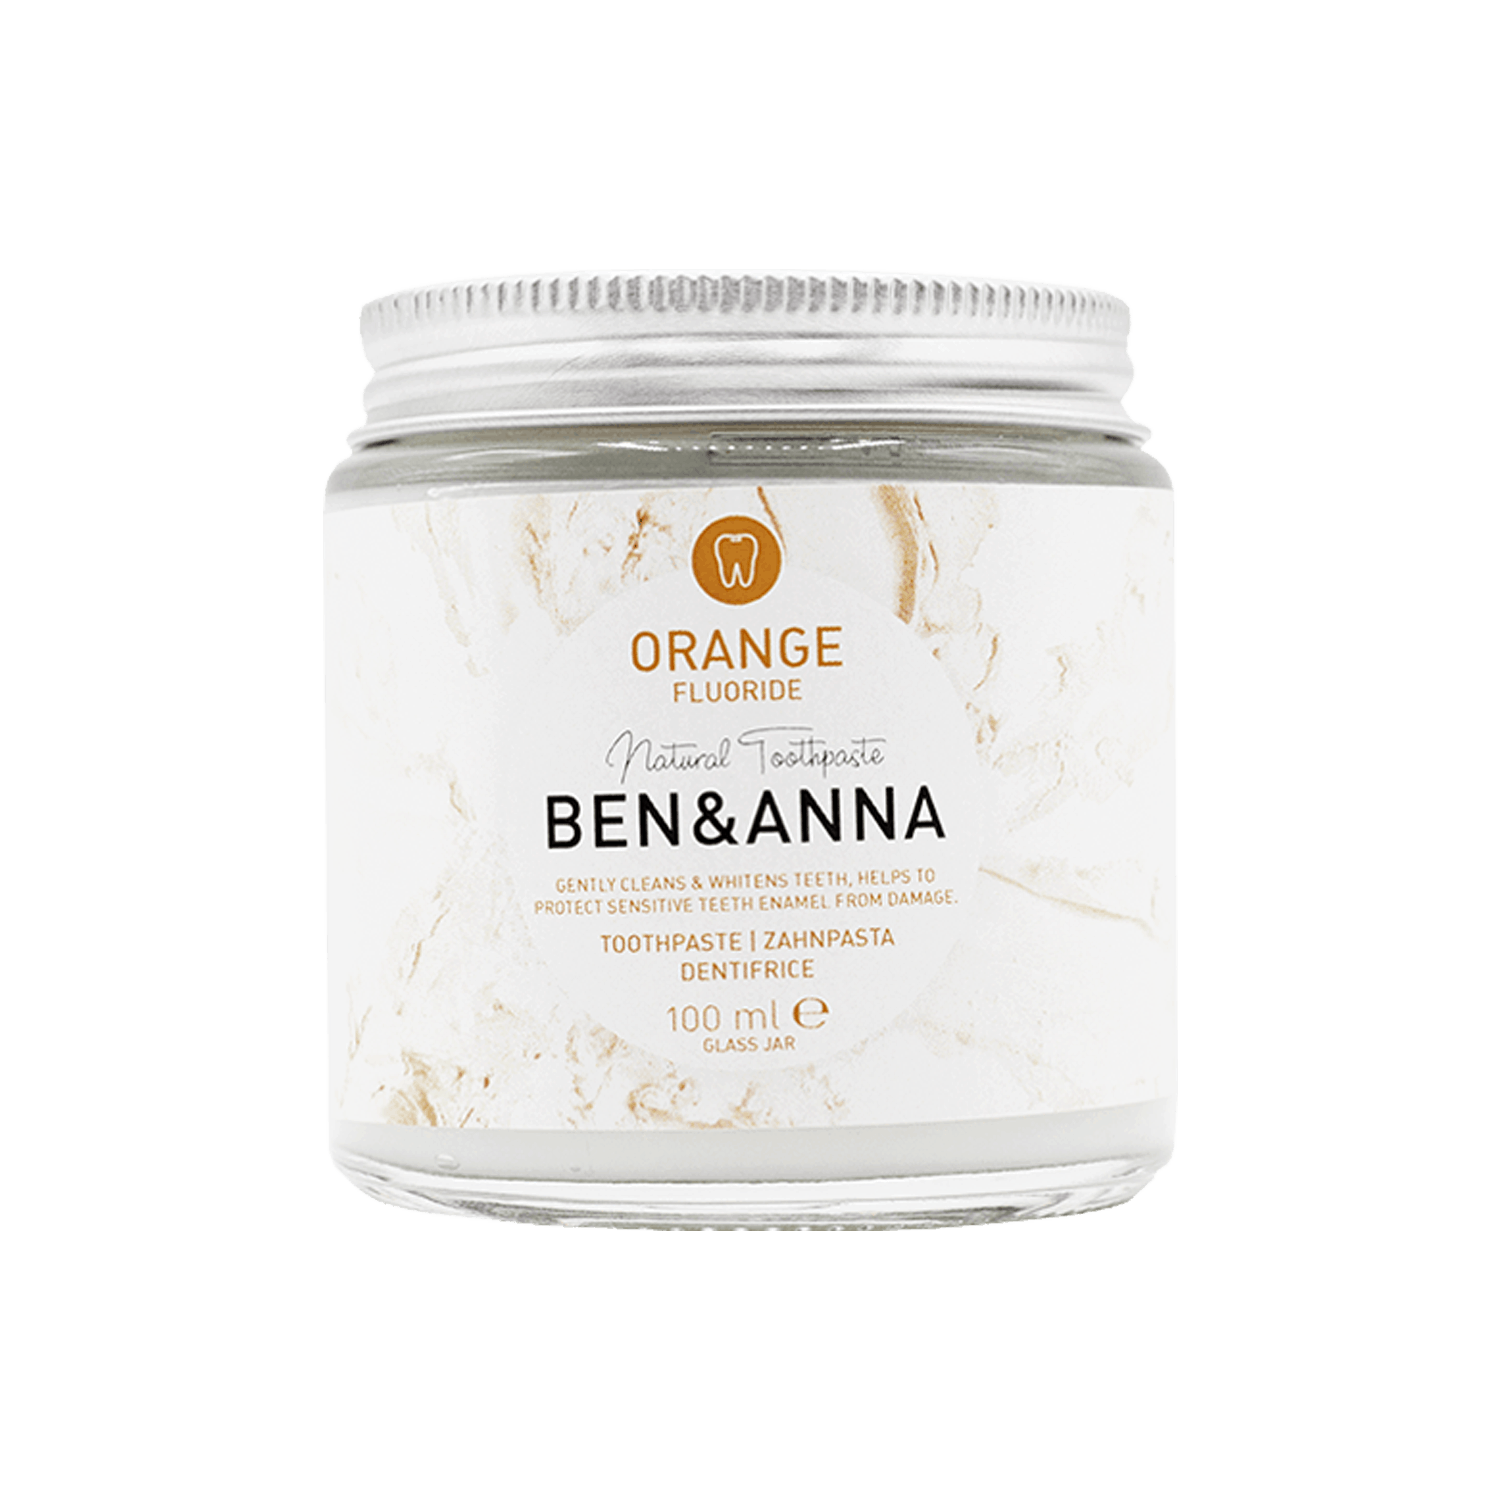 Ben & Anna Organic Orange Toothpaste with Fluoride